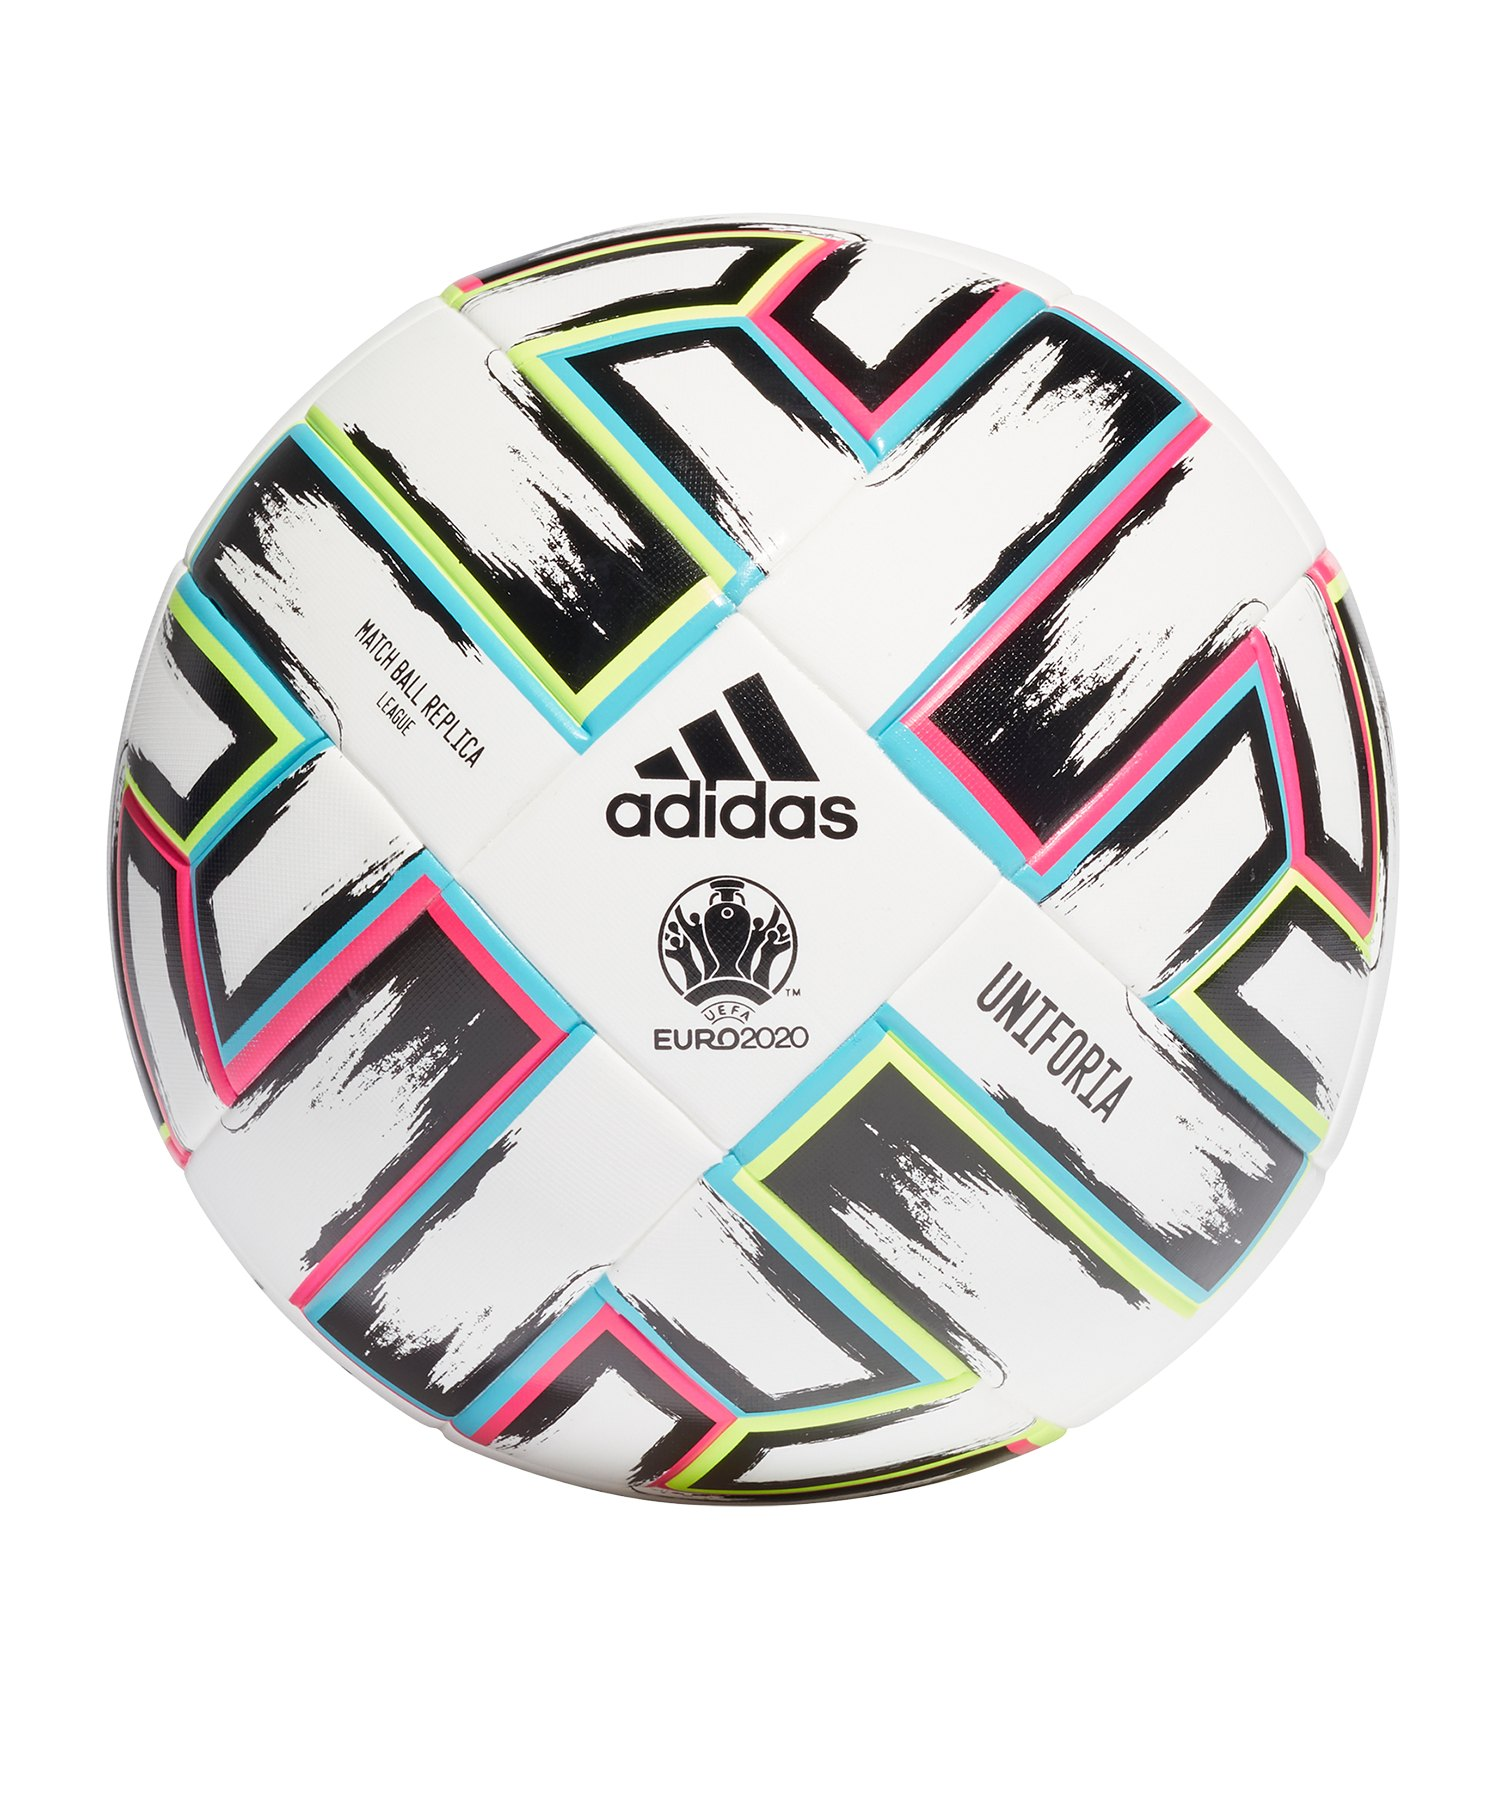 adidas EM 2020 Uniforia Trainingsball Replik Weiss - weiss